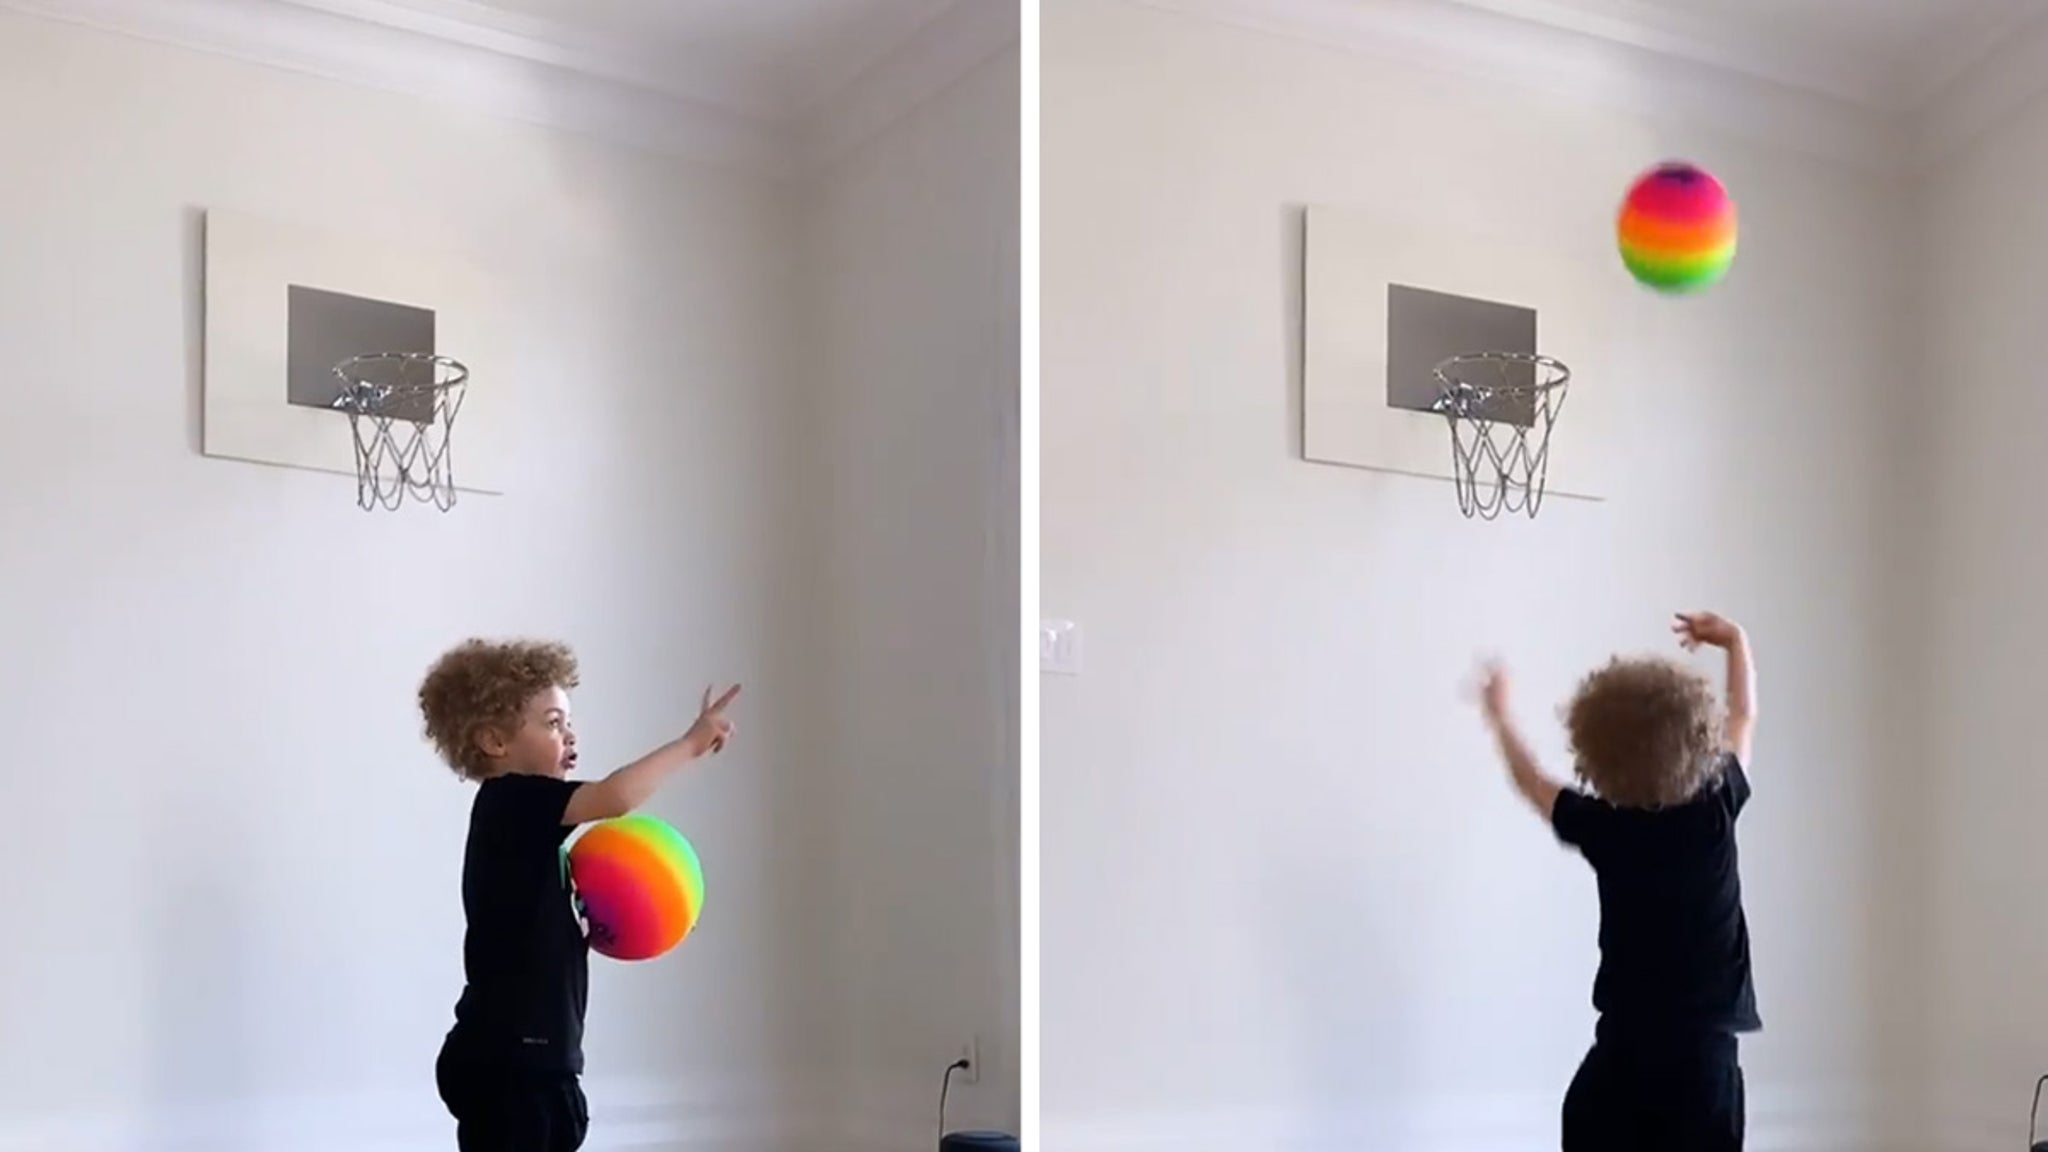 Drake Son Adonis Playing Basketball to His Music, Sinks 3 in a Row